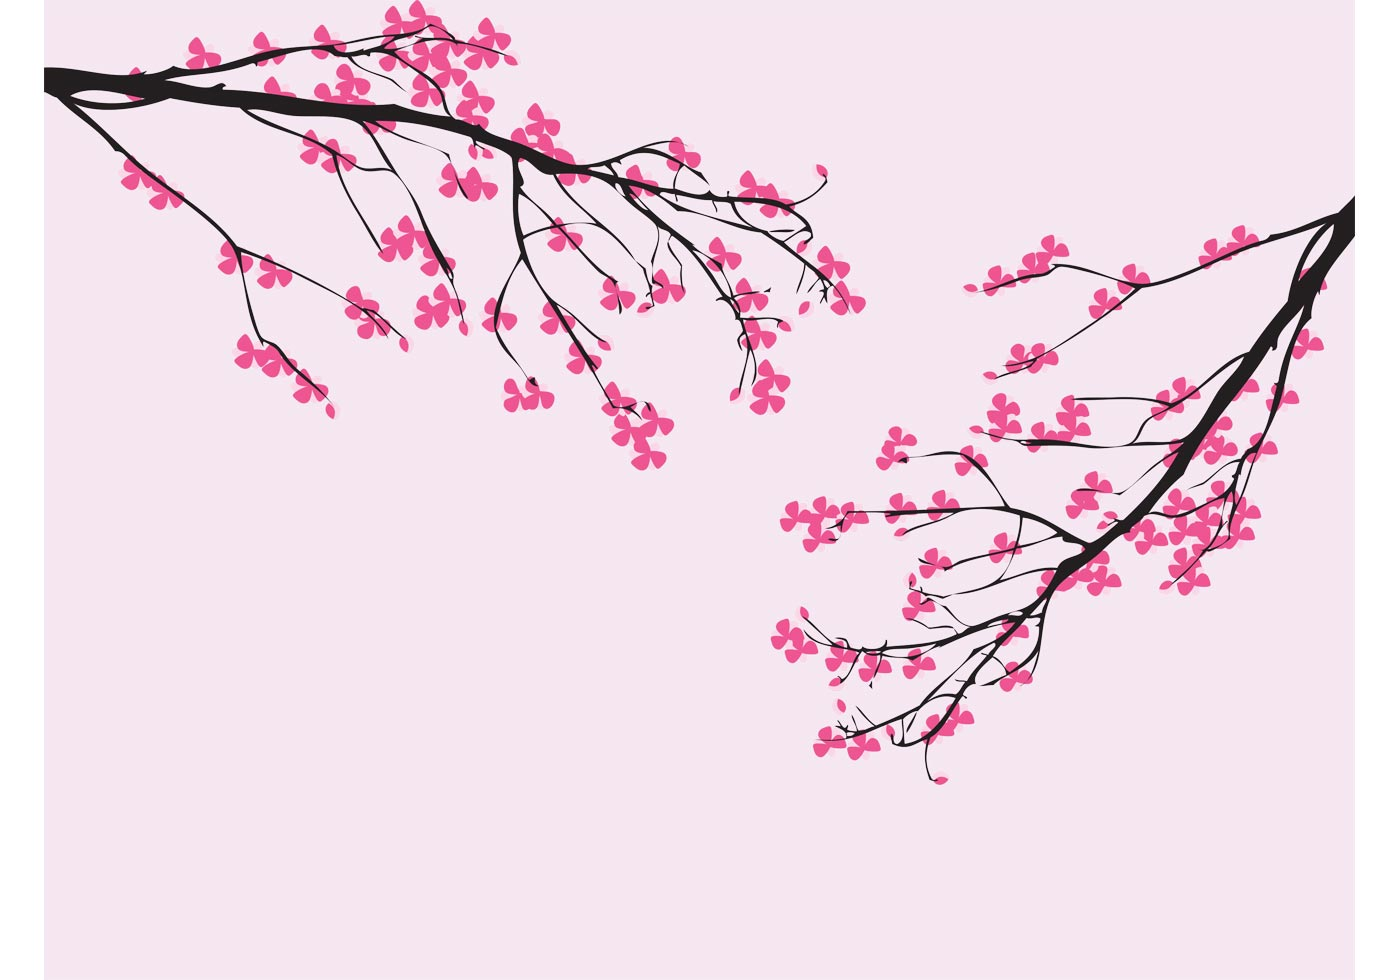 Tattoo Bonn Vector Cherry Blossom - Download Free Vector Art, Stock